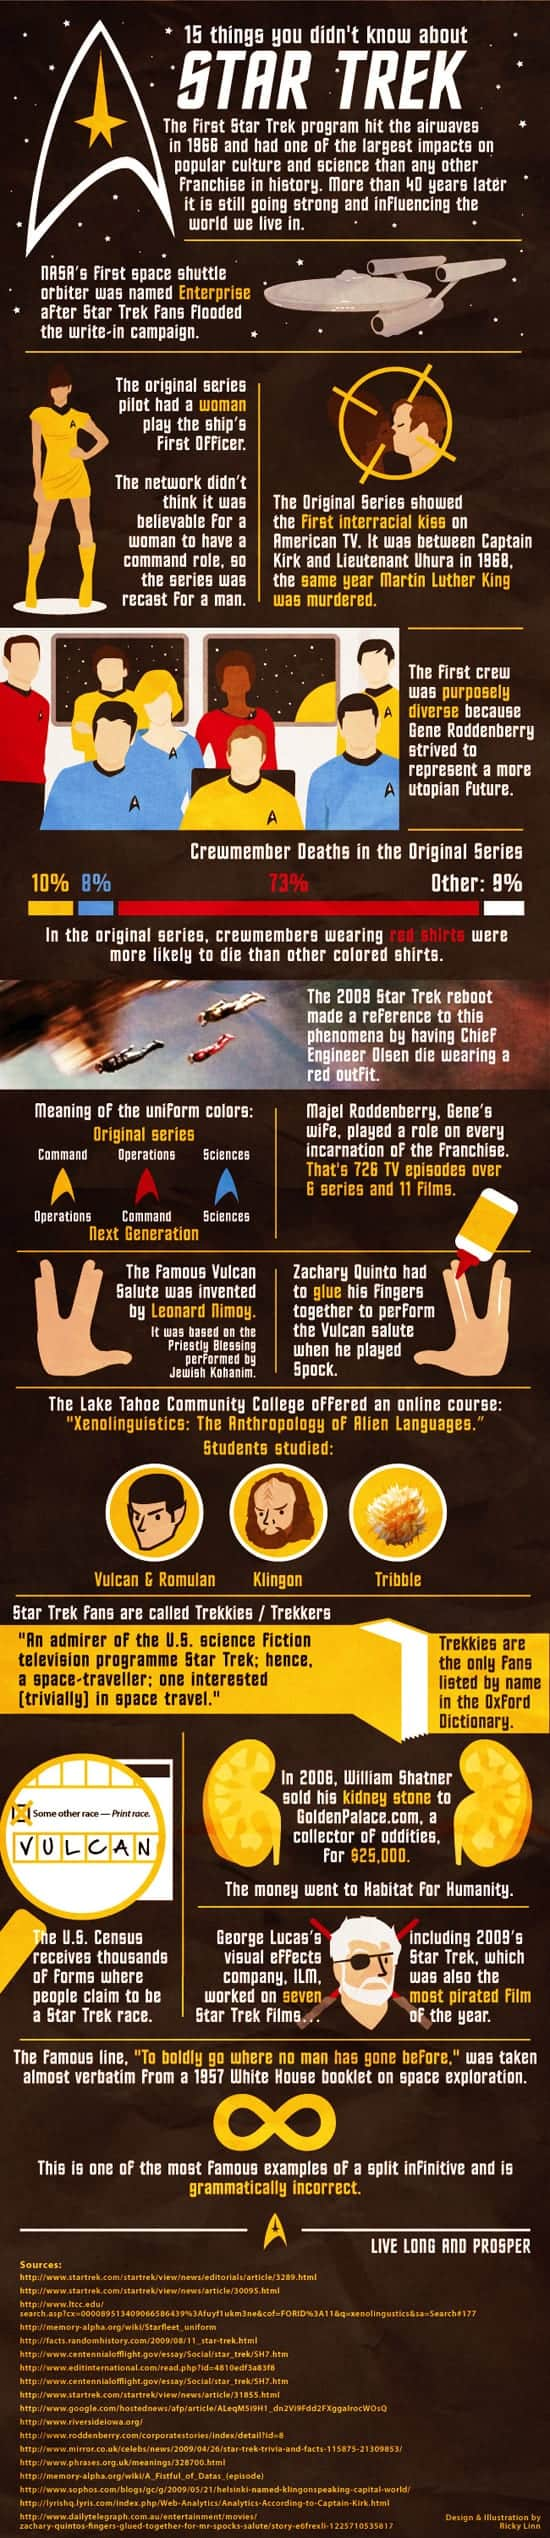 15 Things You Didn't Know About Star Trek